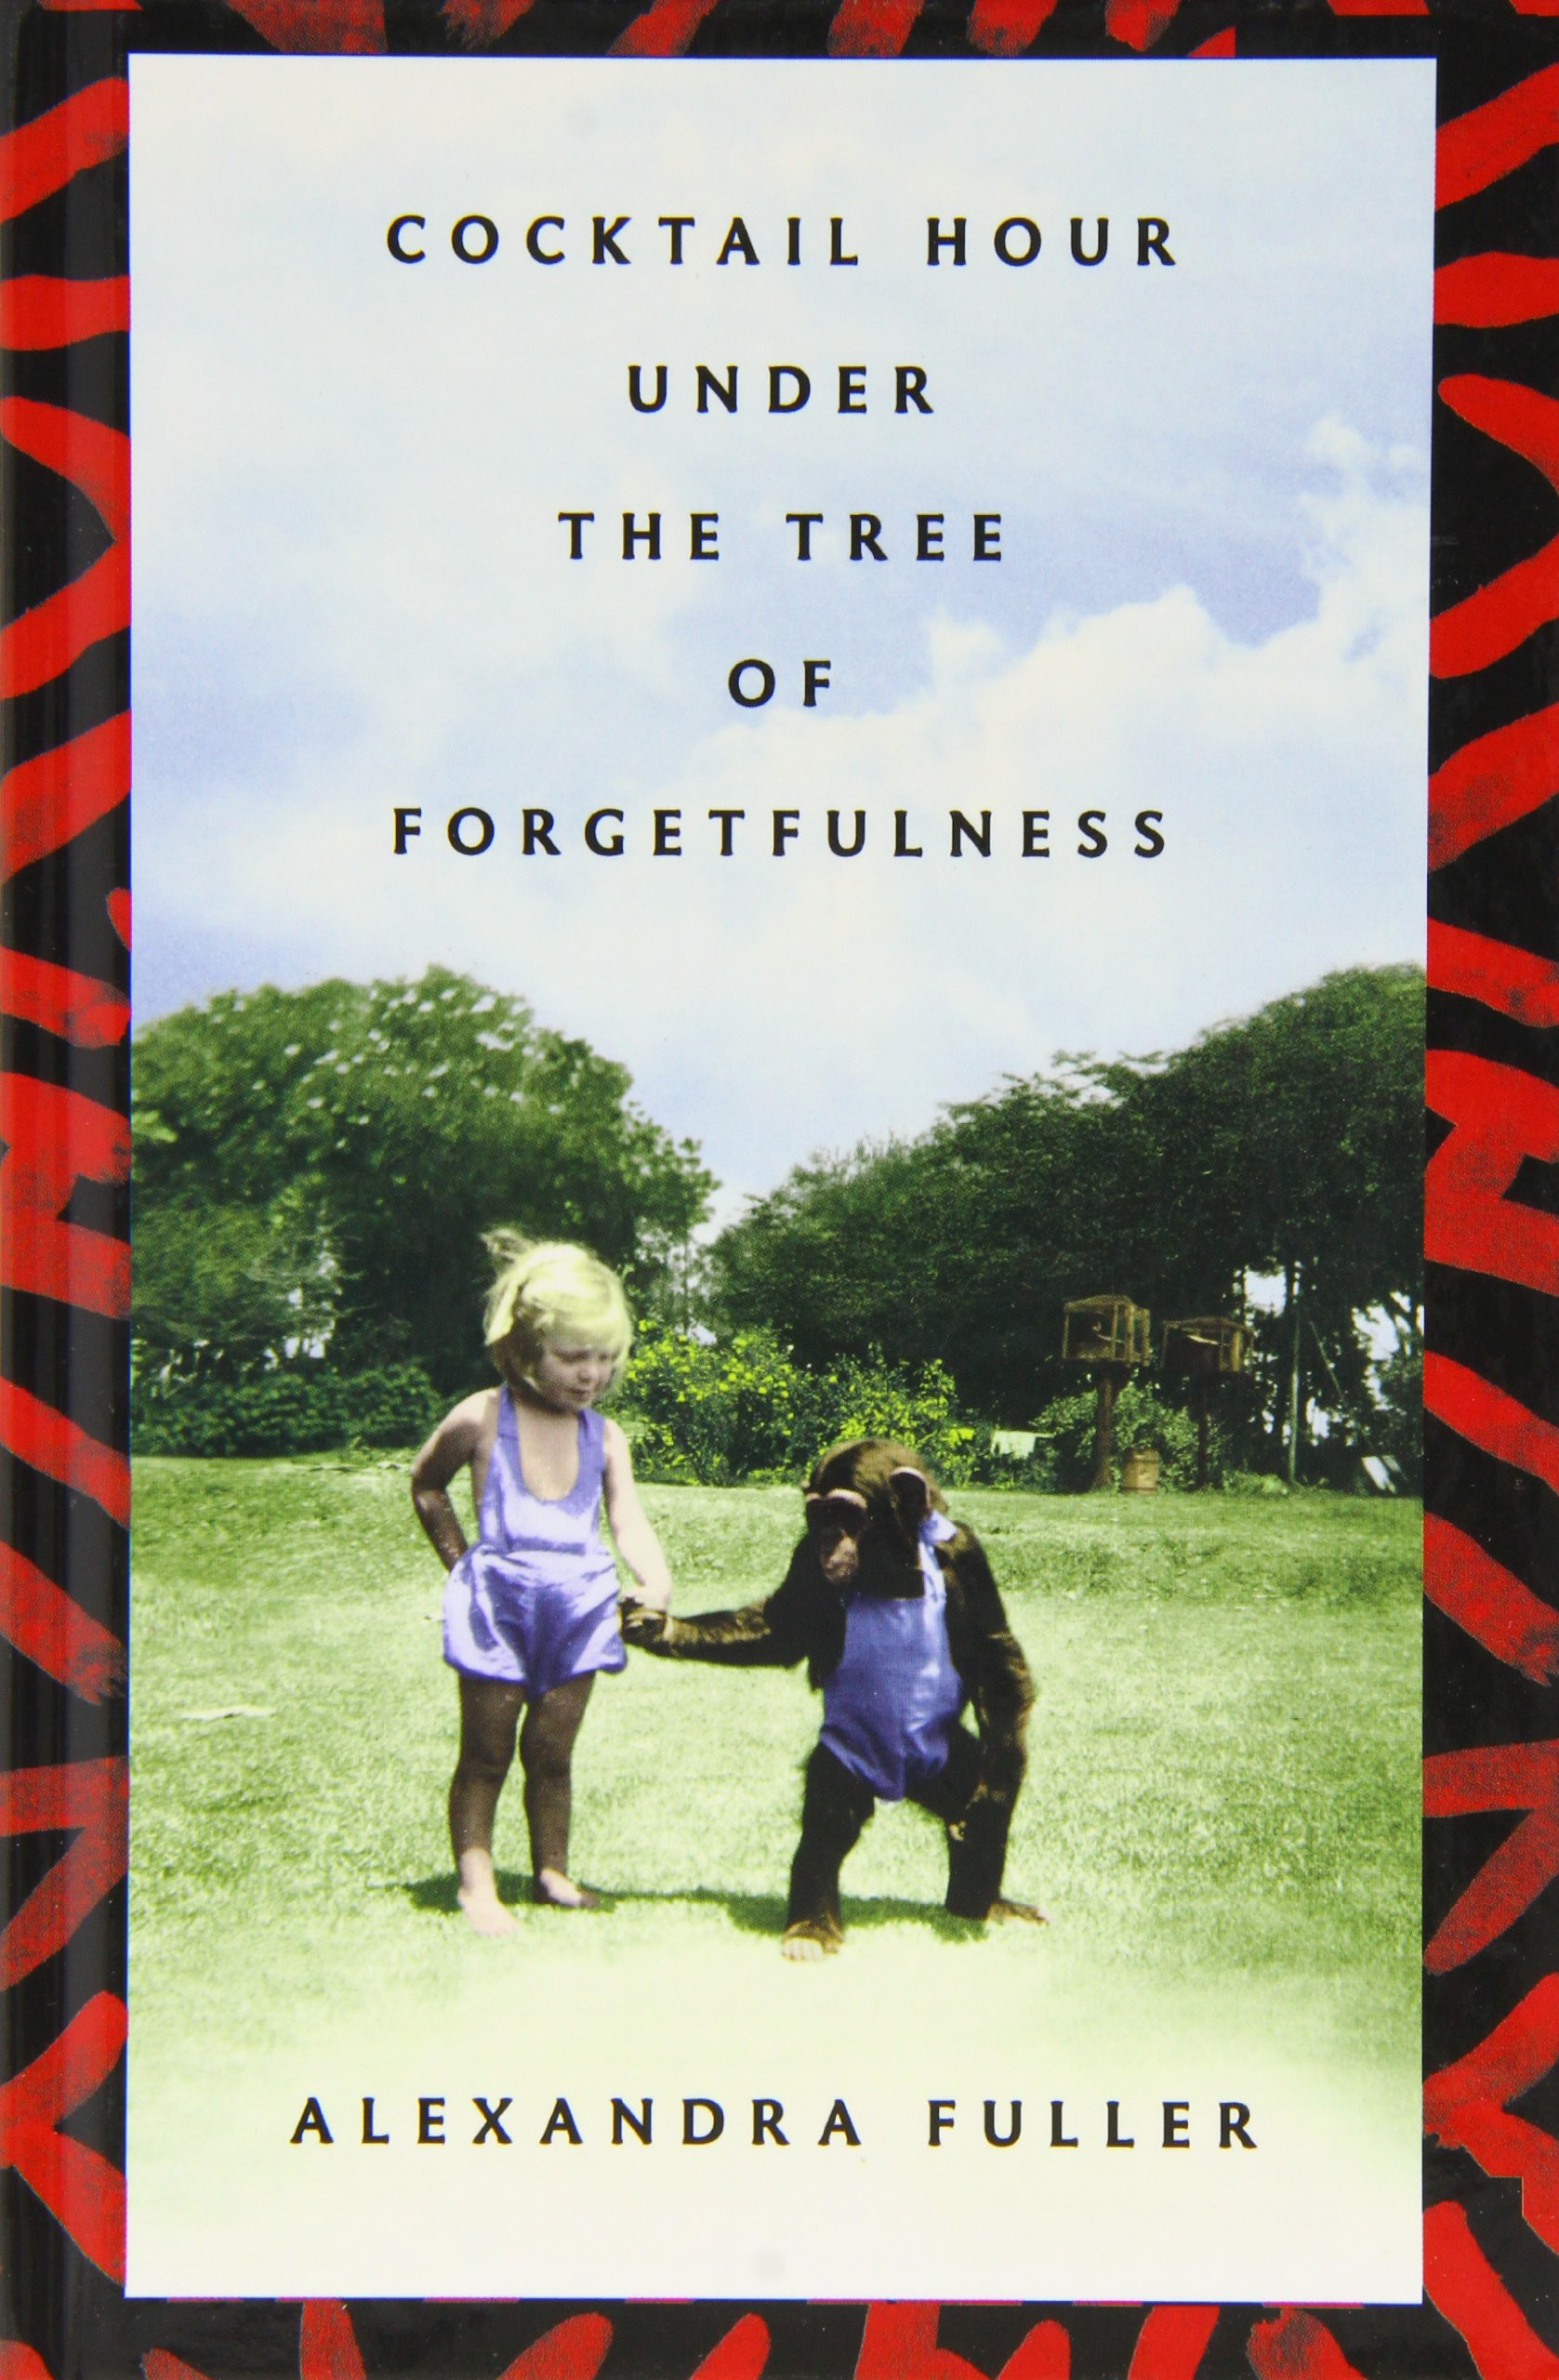 Cocktail Hour Under The Tree Of Forgetfulness (Thorndike Press Large Print Popular and Narrative Nonfiction Series) pdf